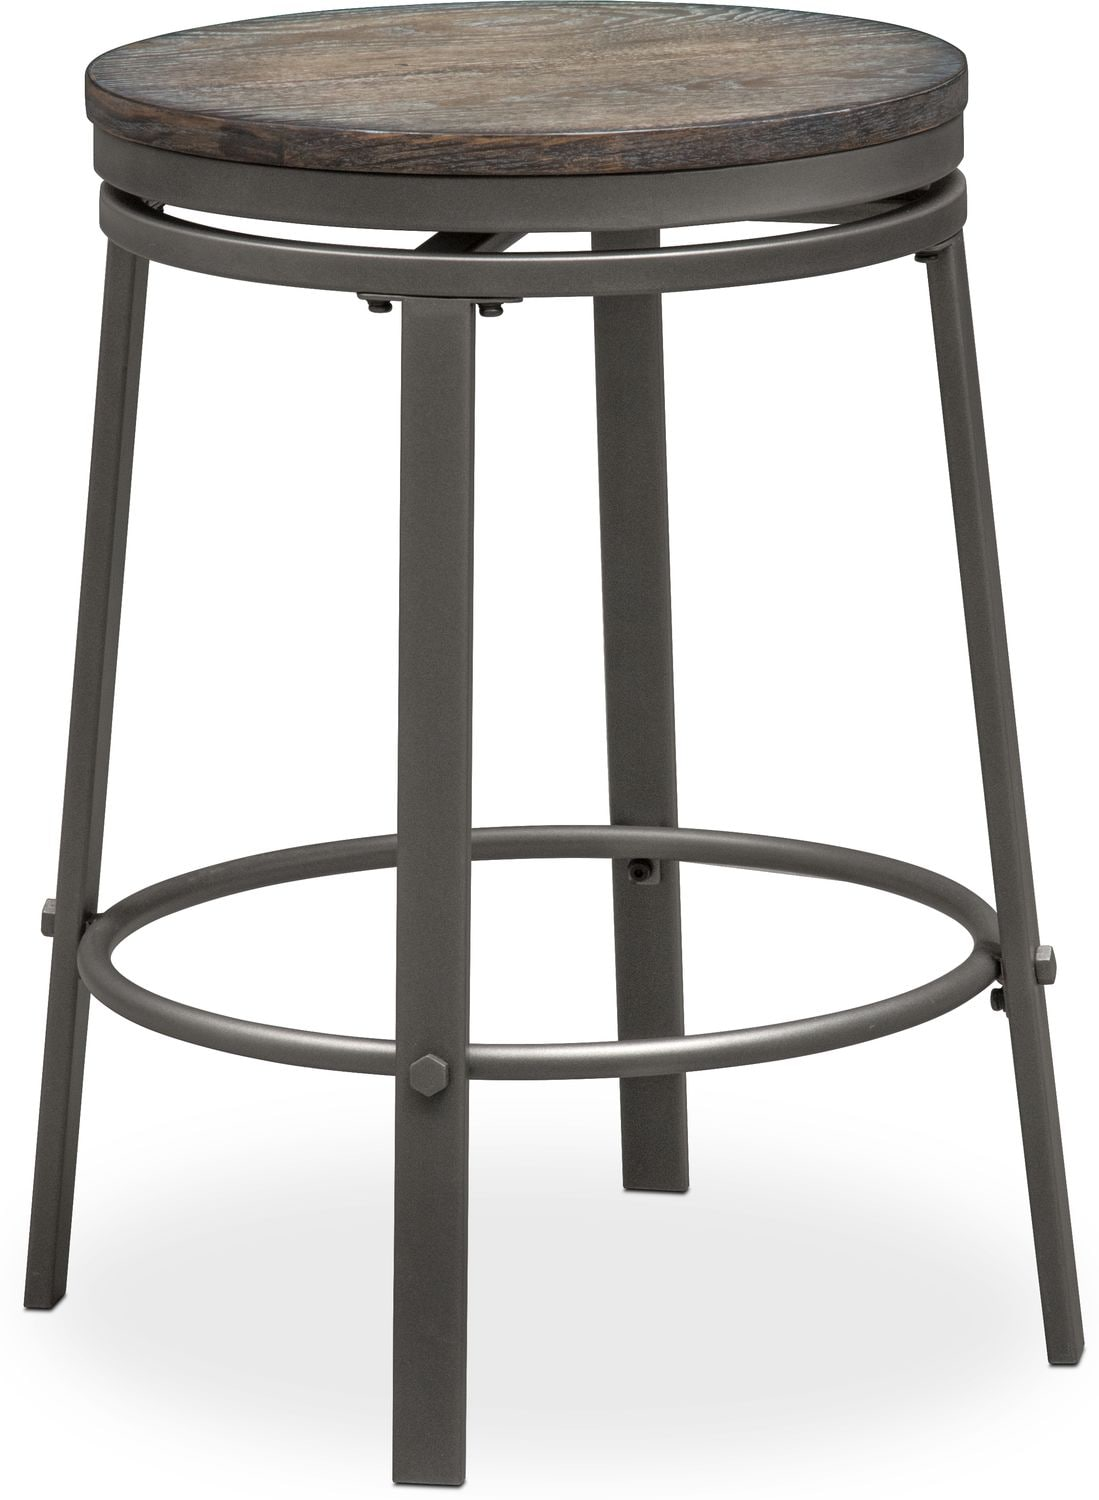 Dining Room Furniture   Stratton Counter Height Stool   Ash